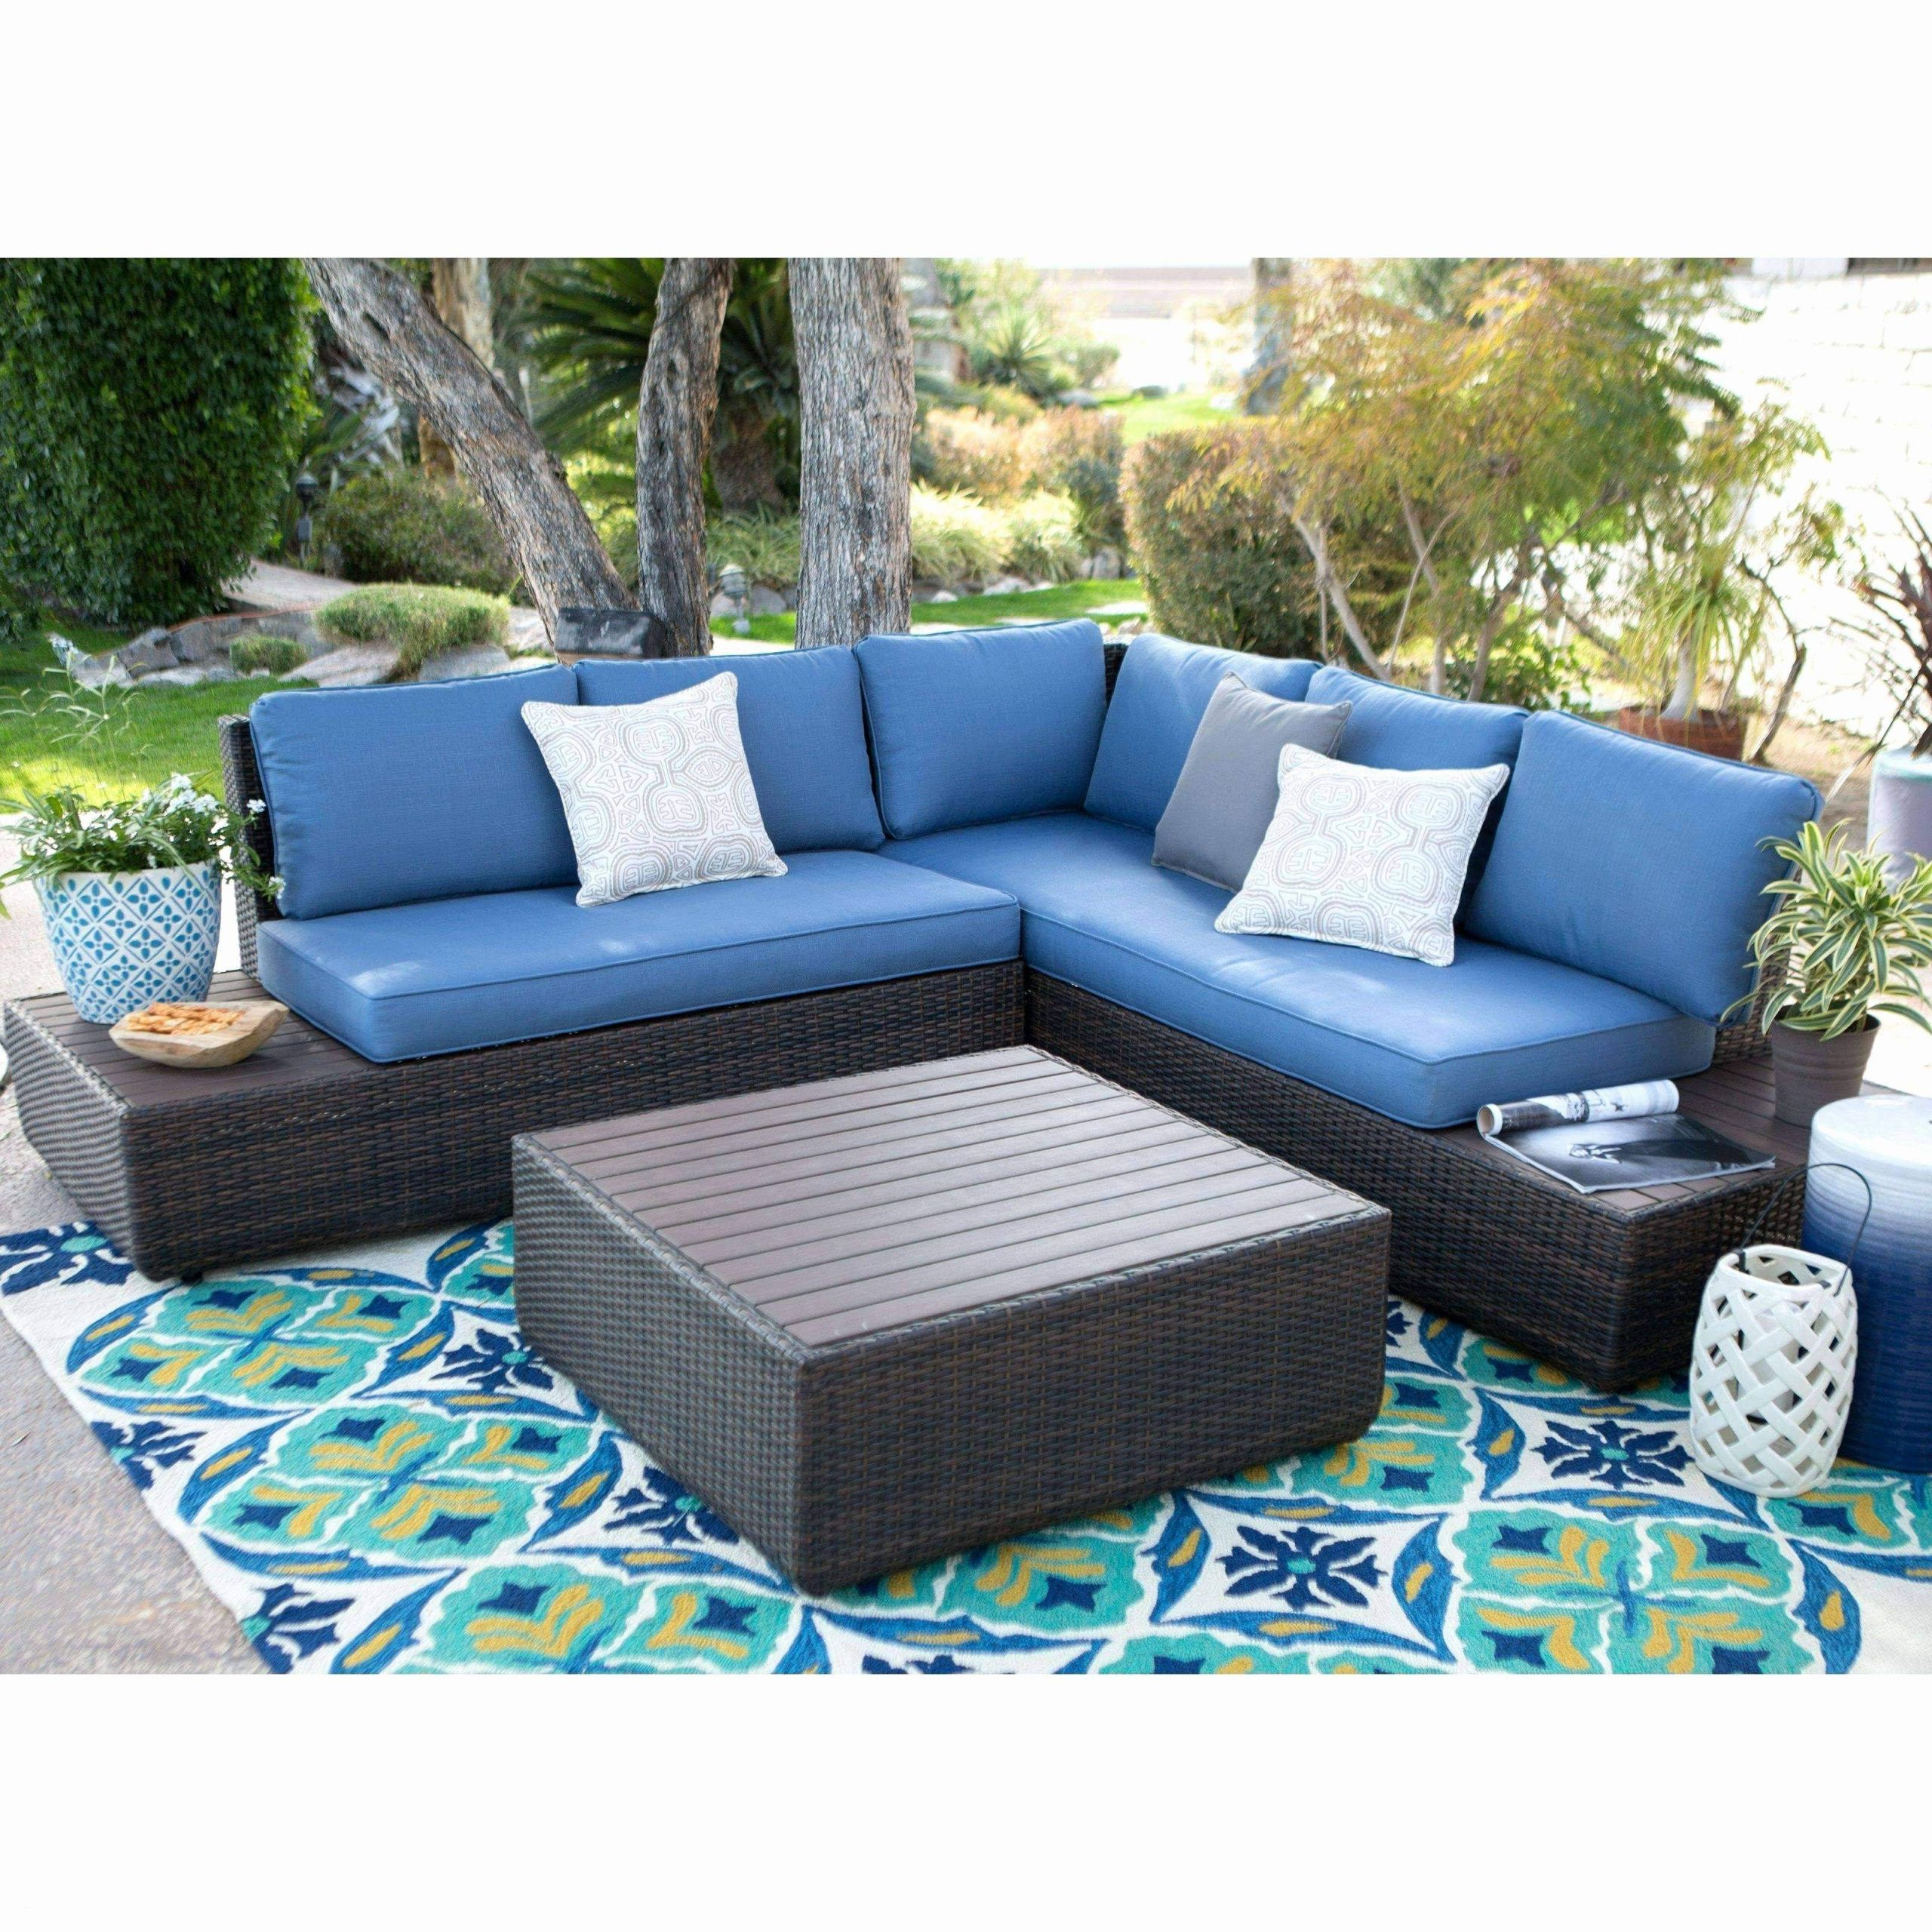 ebay wohnzimmer regal new sofa kaufen gebraucht beste 2 chair patio set elegant wicker outdoor of ebay wohnzimmer regal